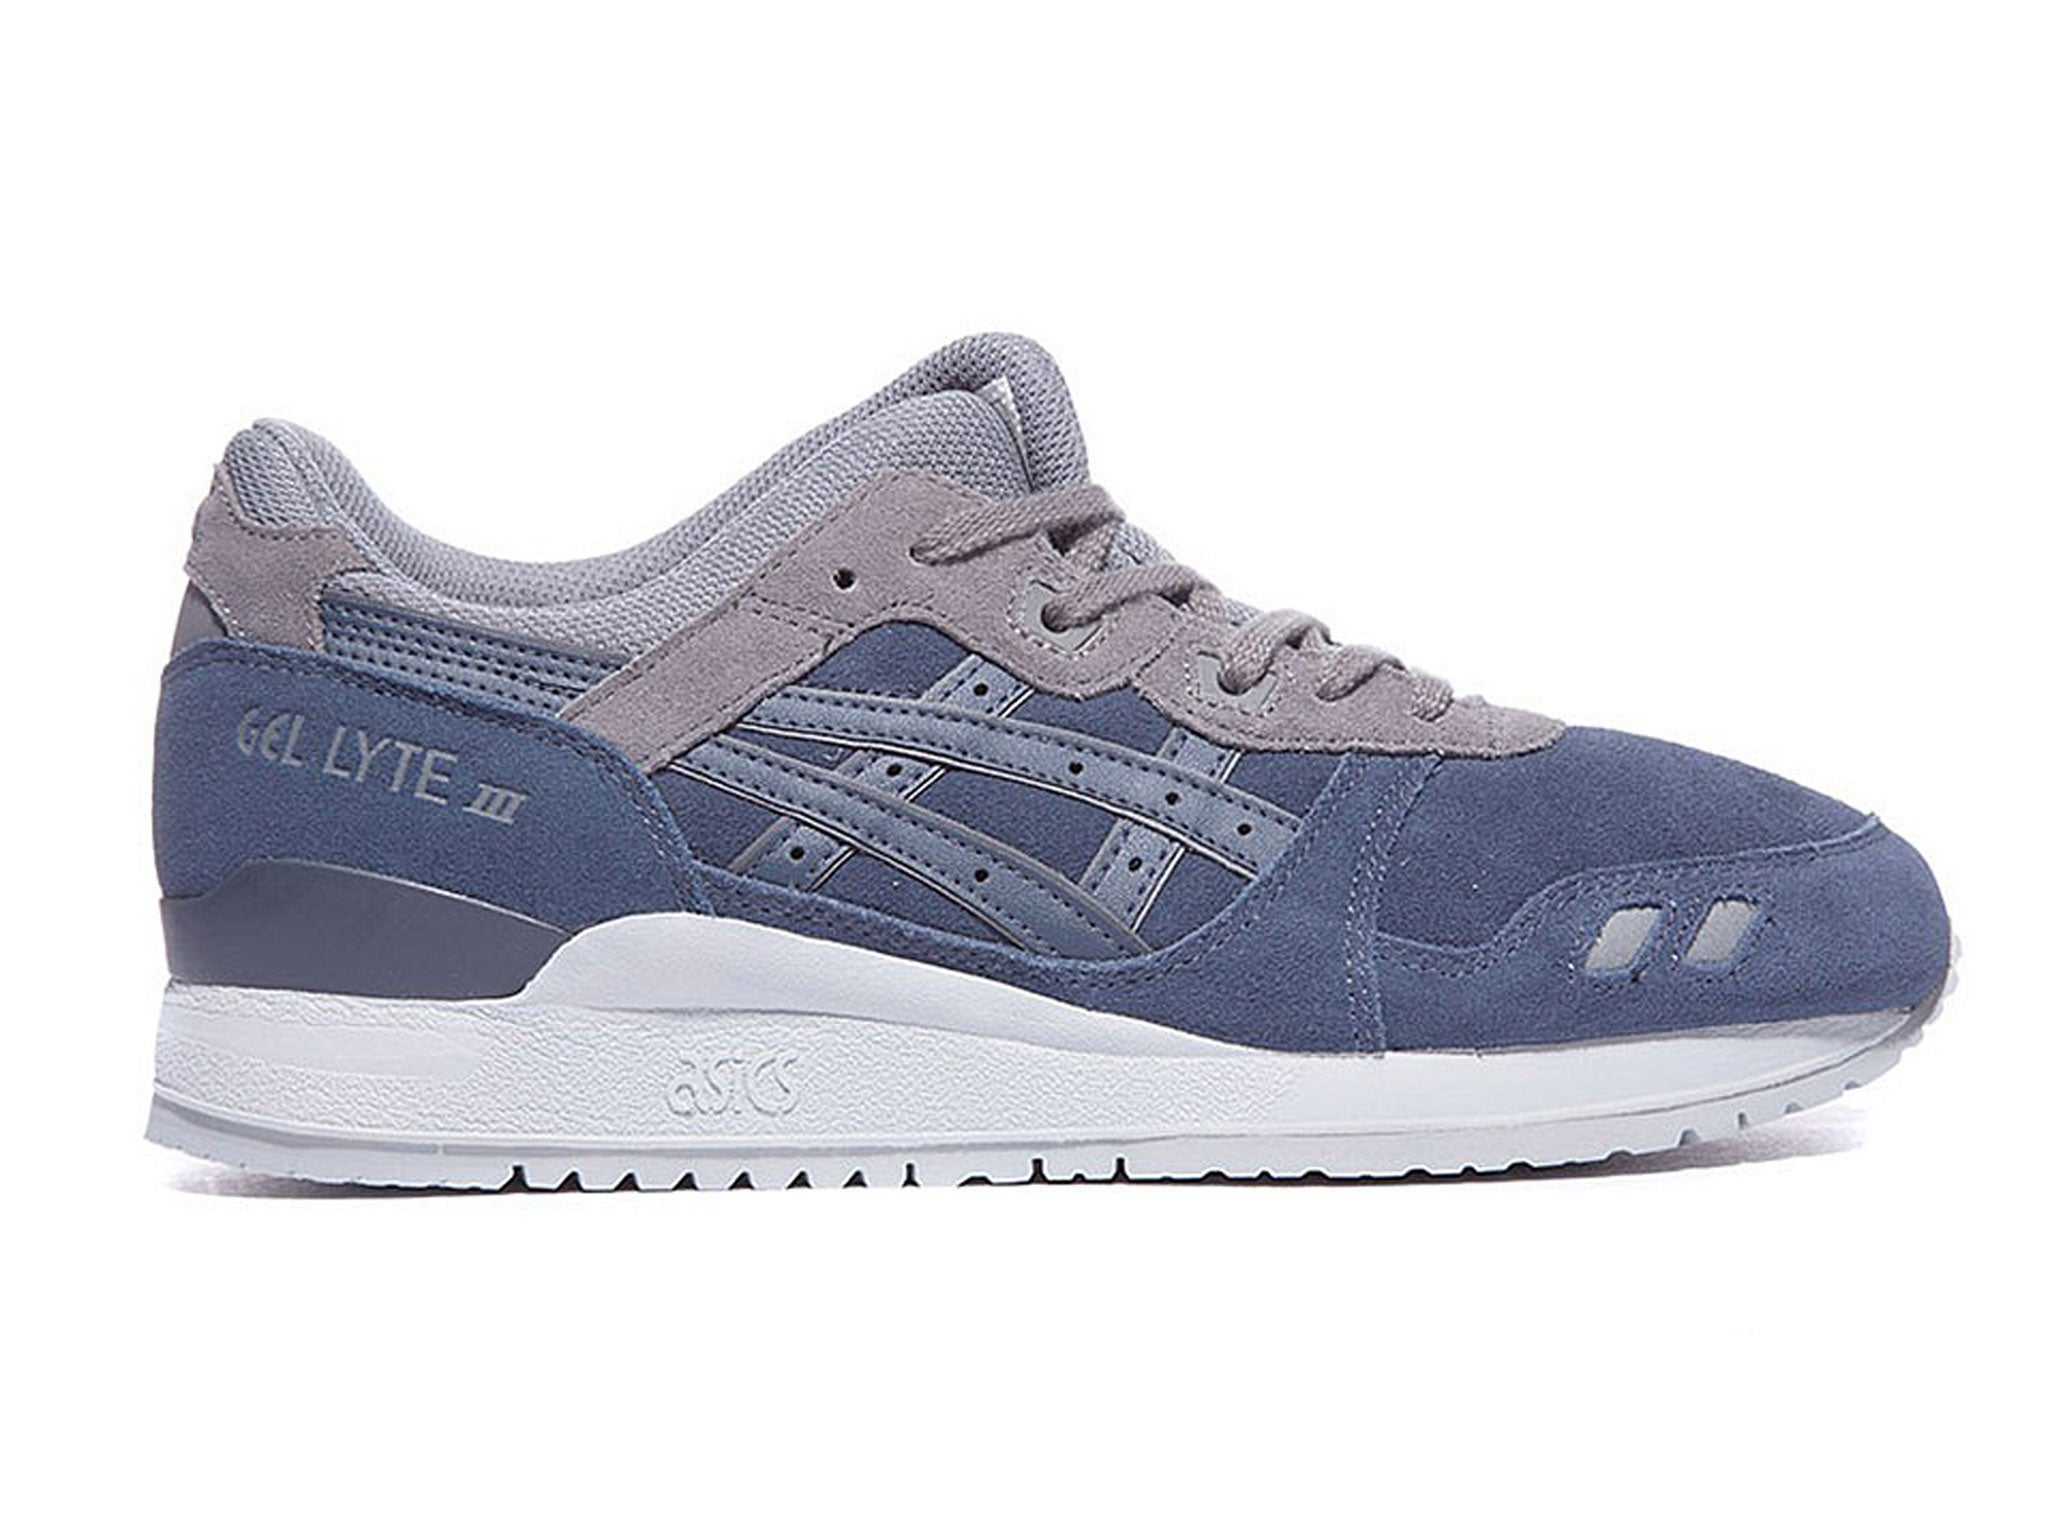 8feeecb02 Probably the most appropriated silhouette in the Asics range